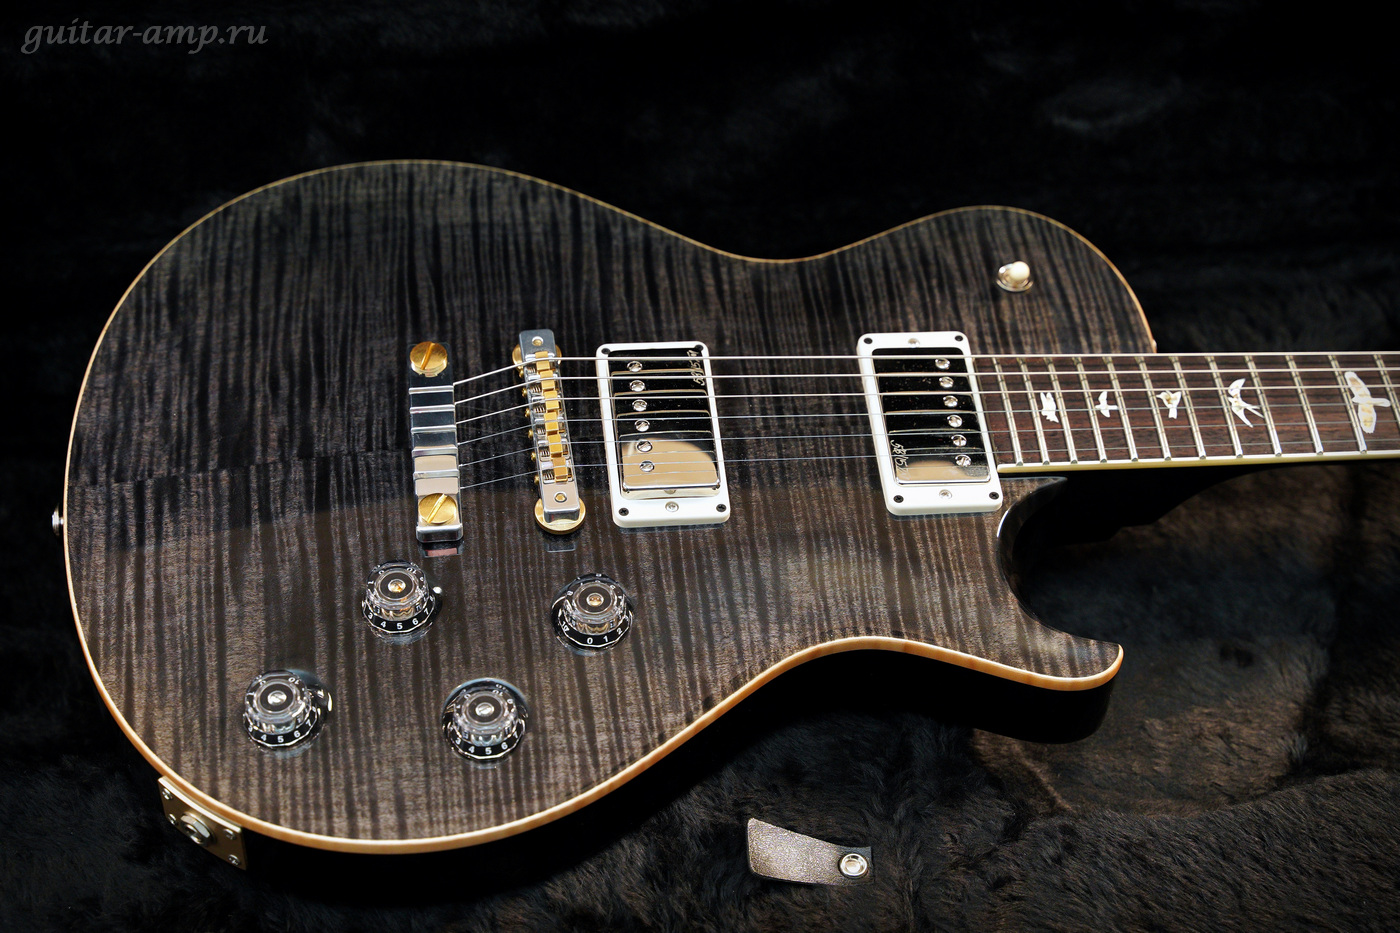 PRS SC245 Charcoal Grey Black 10 Top 2015 13_garx1400.jpg